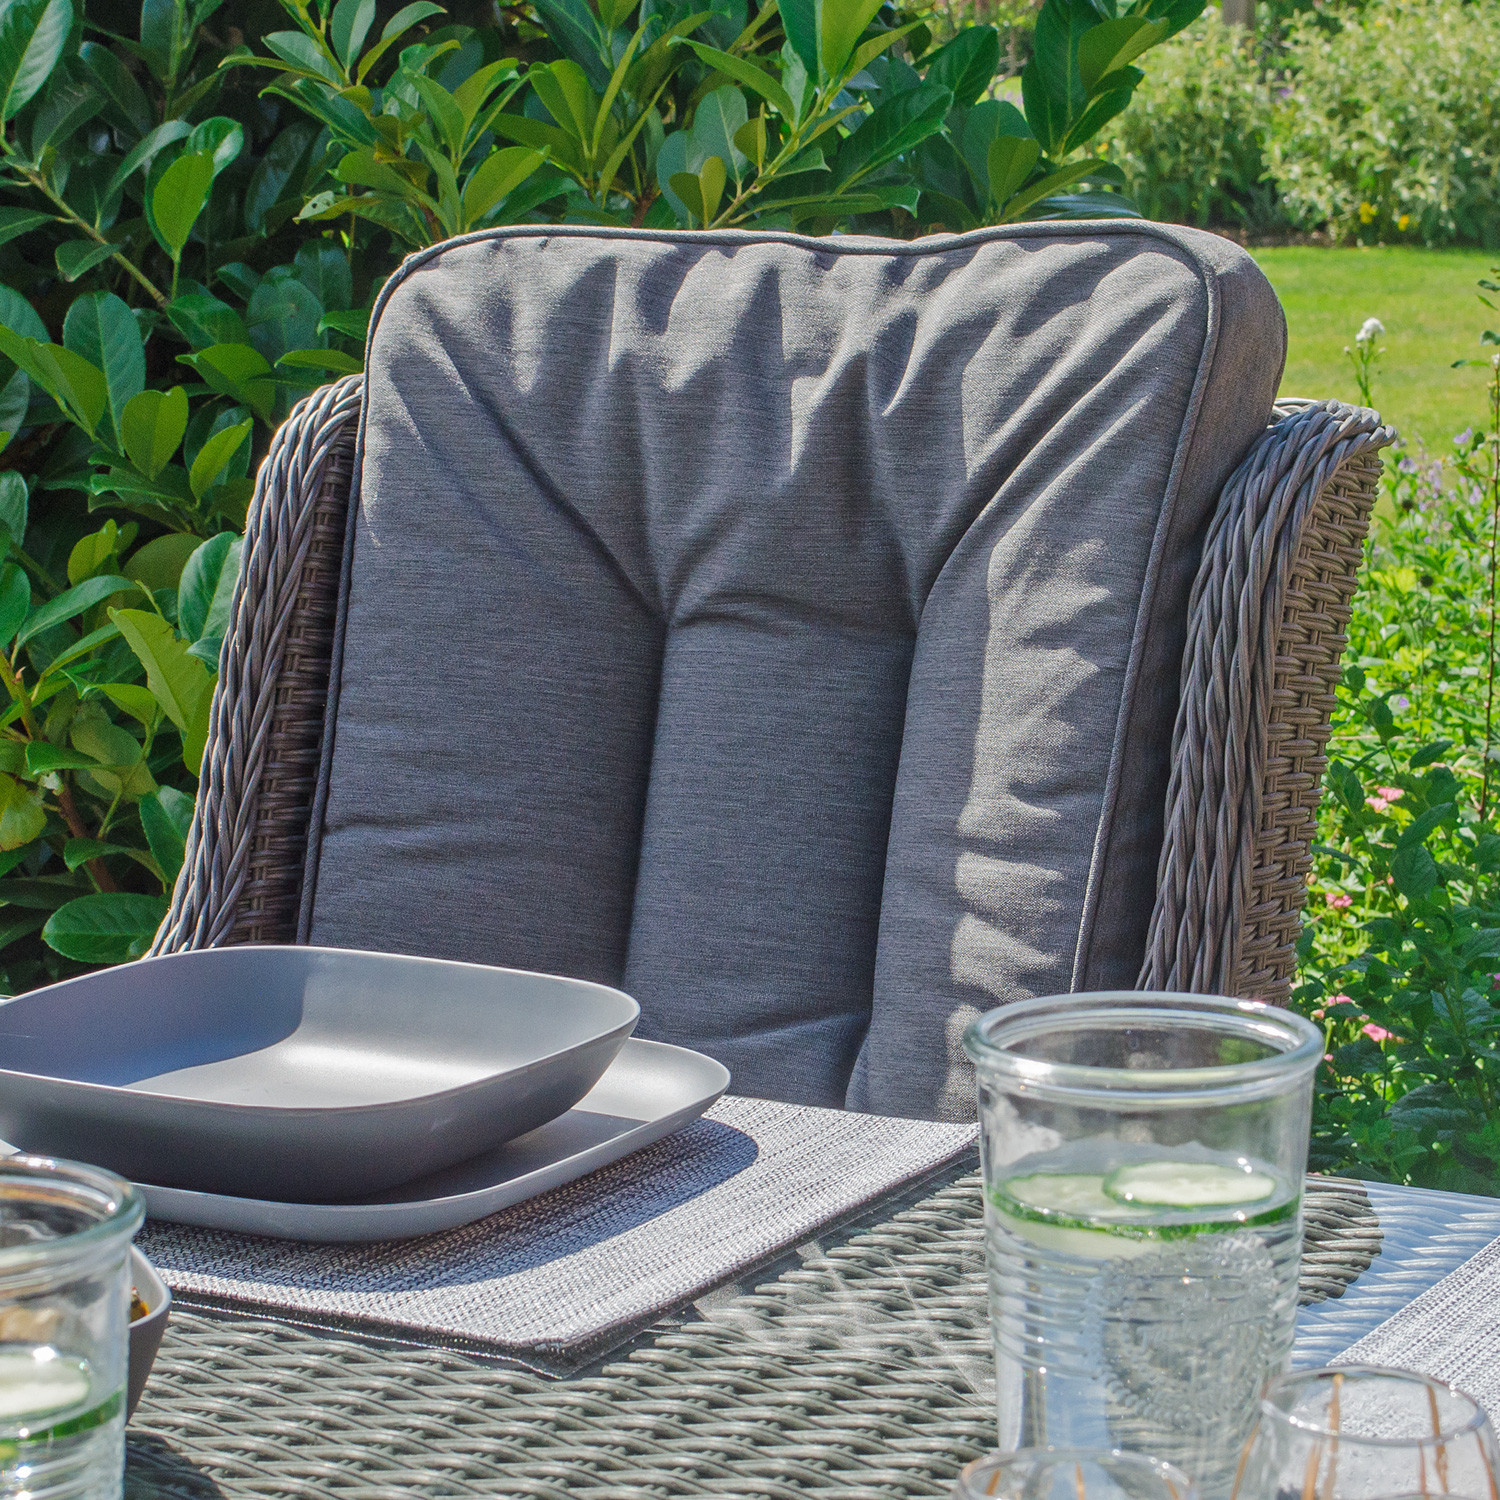 Nova – Heritage Thalia 6 Seat Rattan Dining Set – (View 18 of 25)